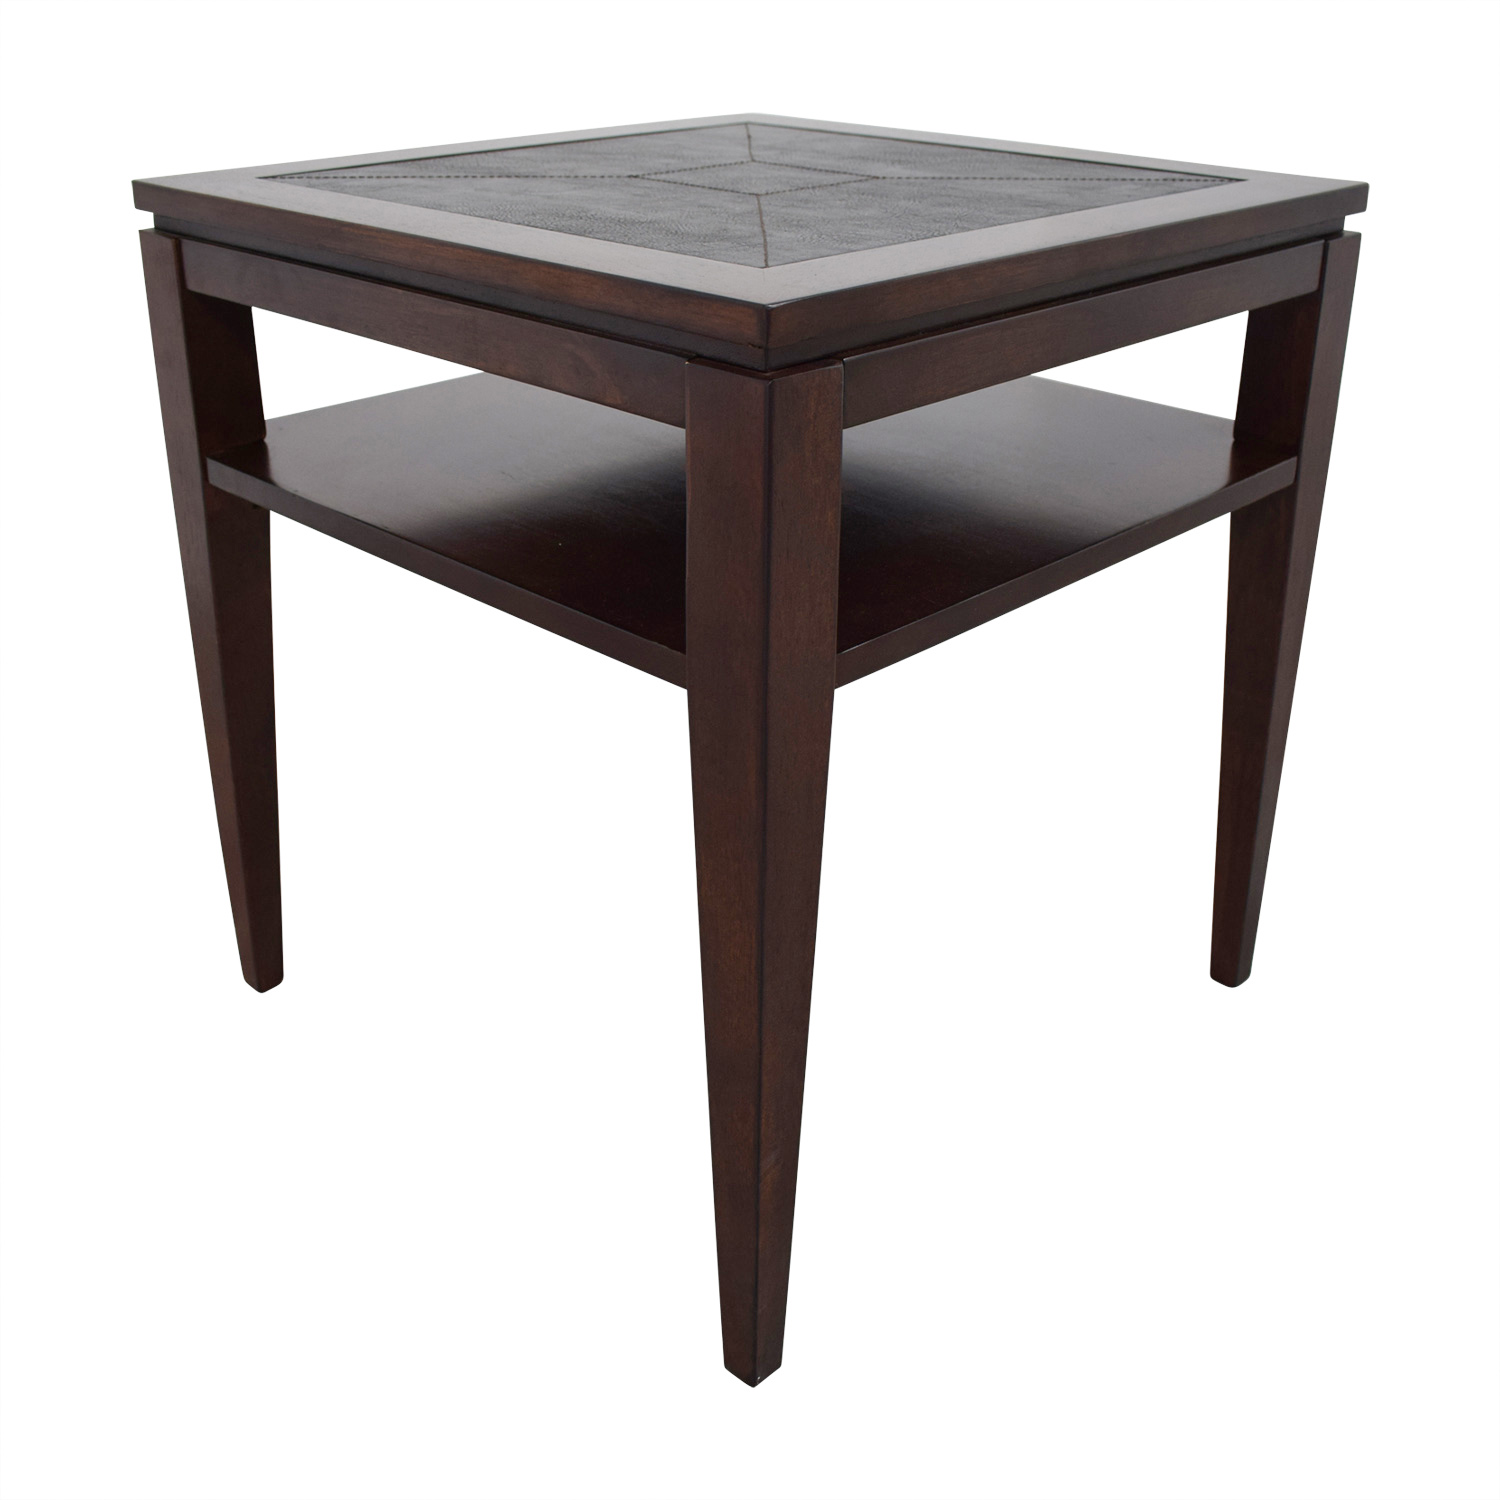 Raymour & Flanigan Raymour & Flanigan End Table used